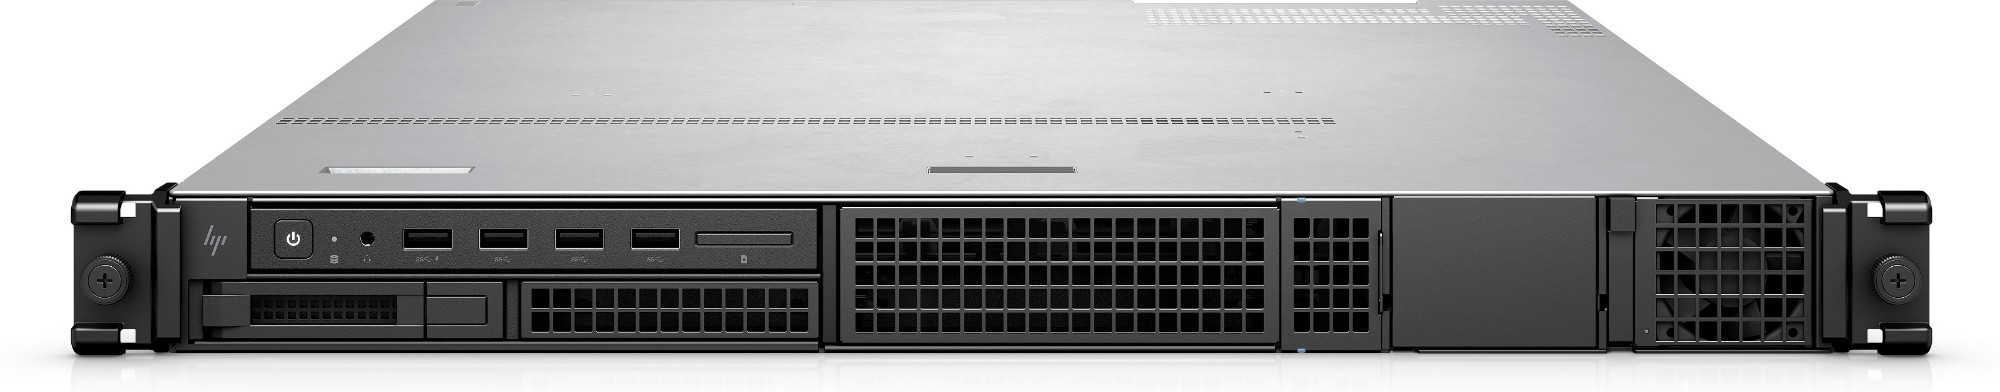 HP ZCentral 4R DDR4-SDRAM W-2223 Rack-mounted chassis Intel Xeon W 16 GB 256 GB SSD Windows 10 Pro for Workstations Workstation Black